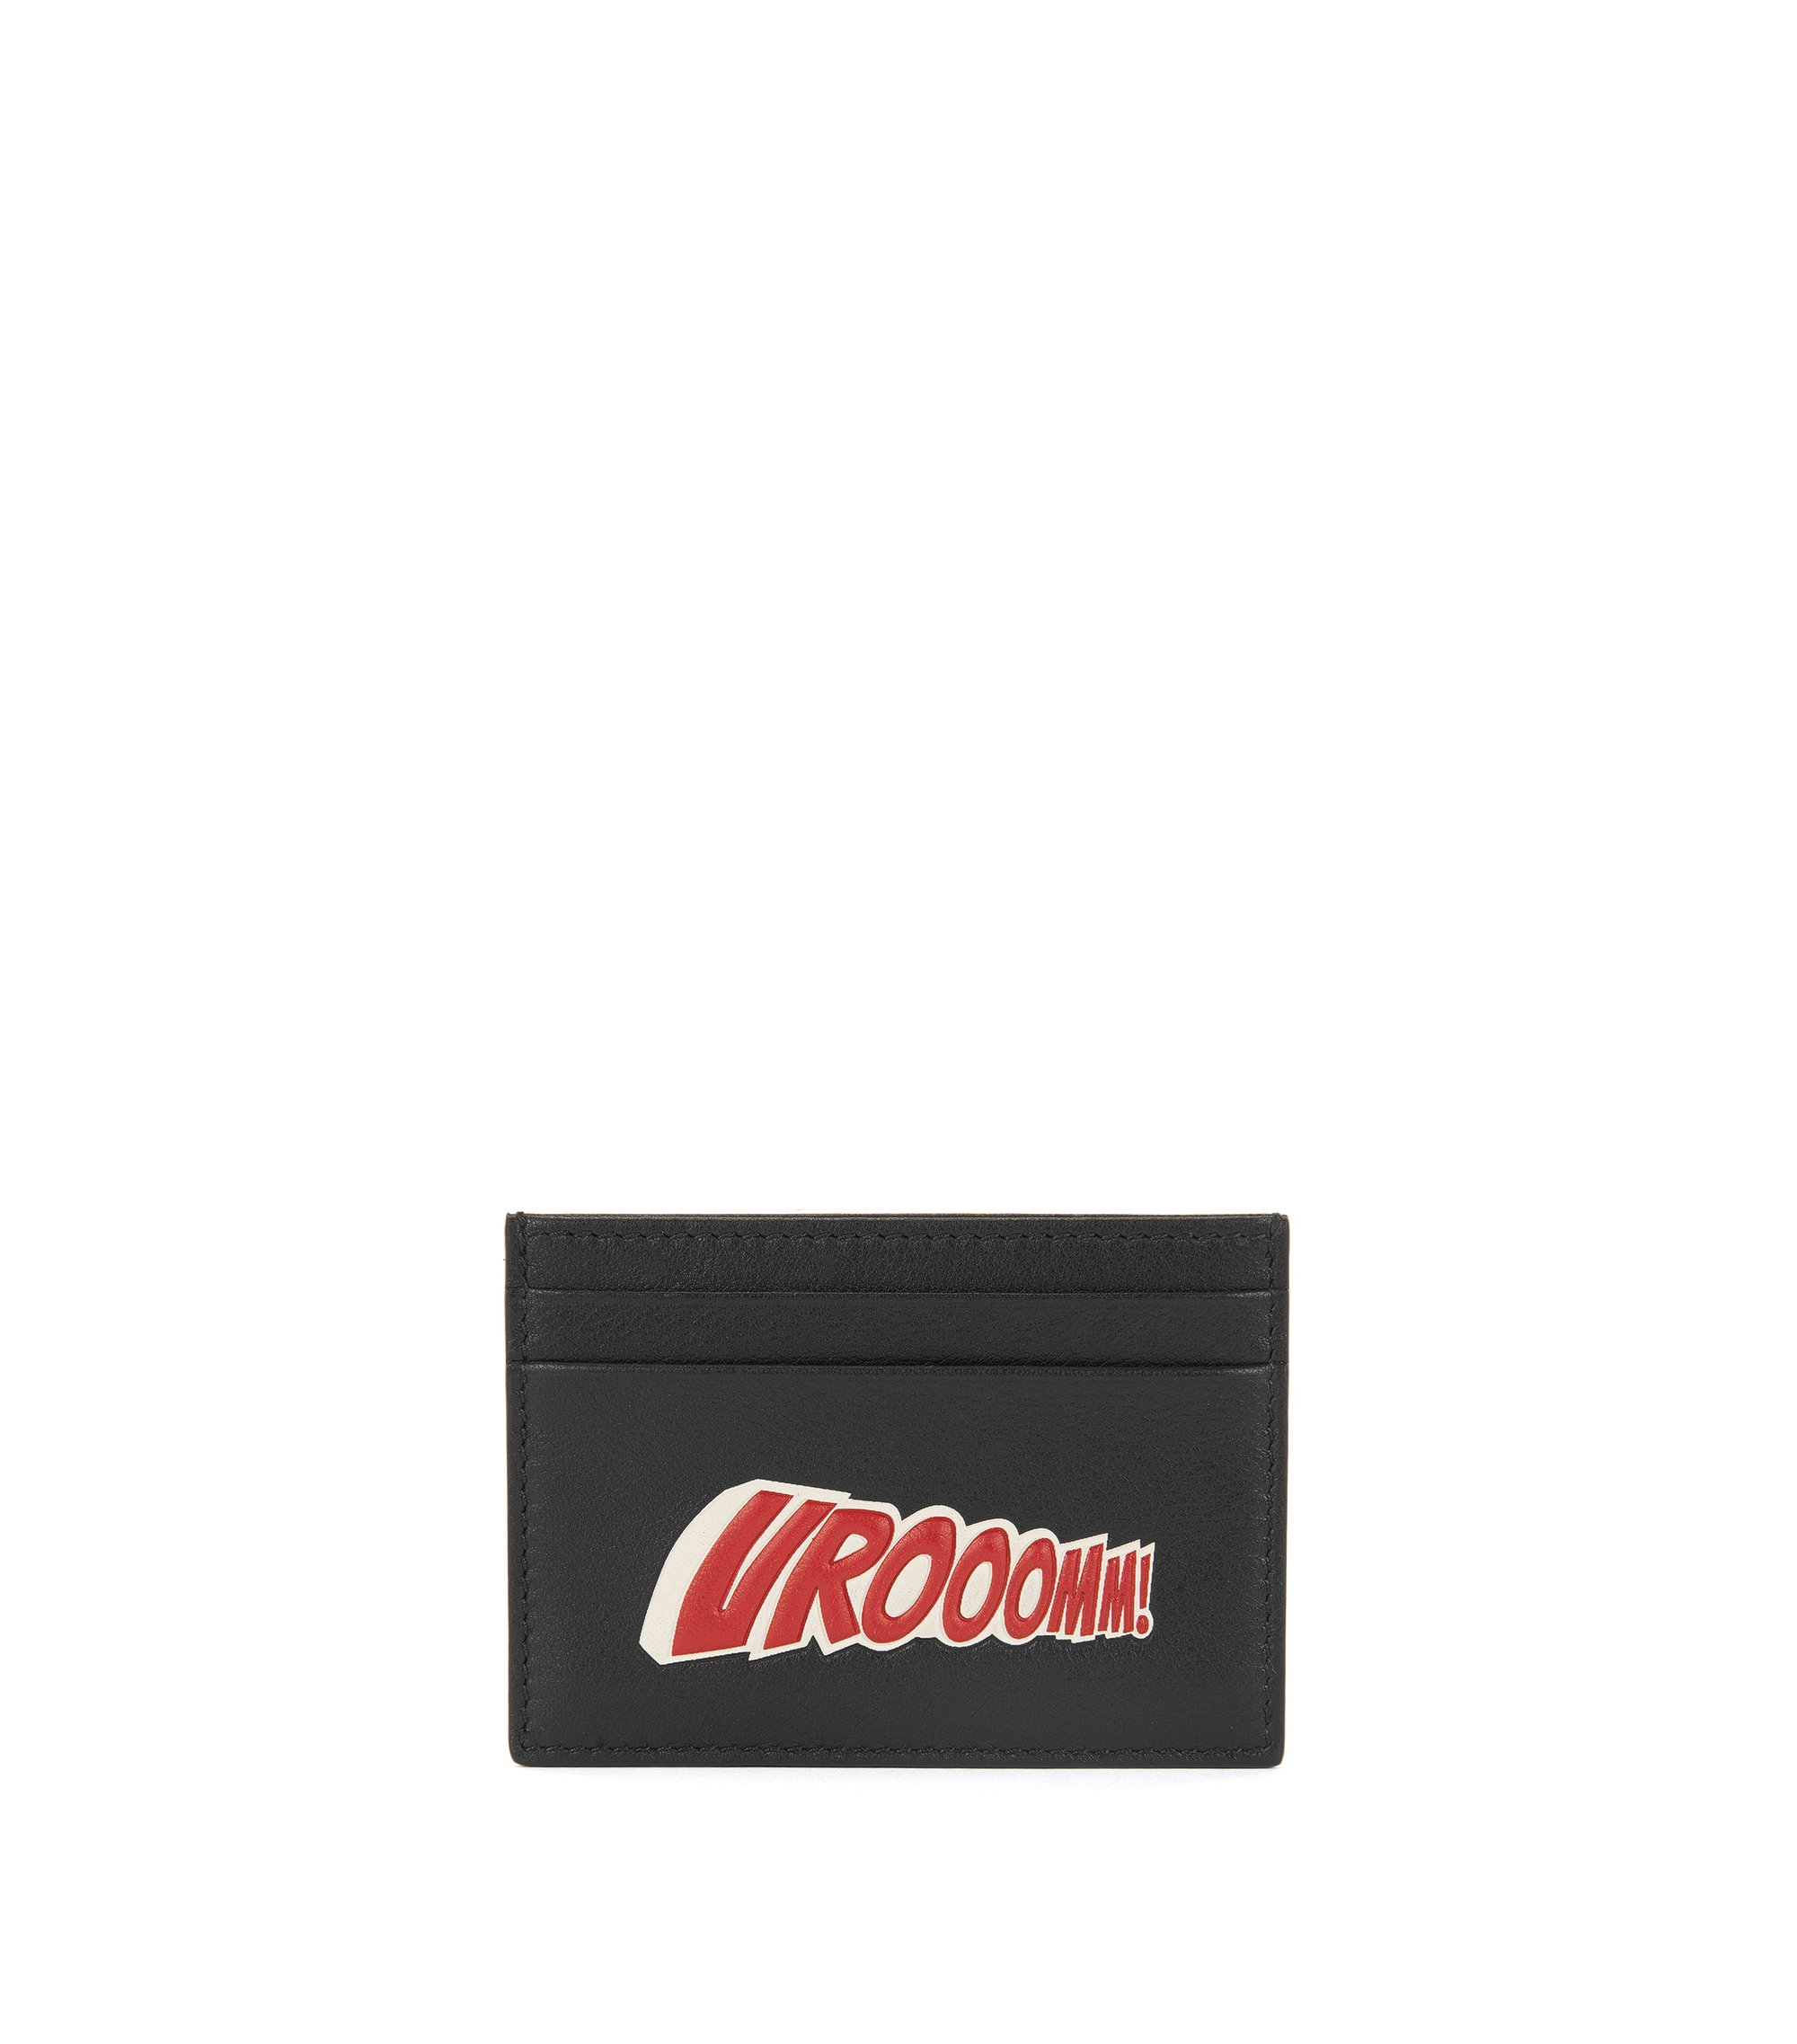 Embroidered Leather Card Holder | HB Road S Card, Black